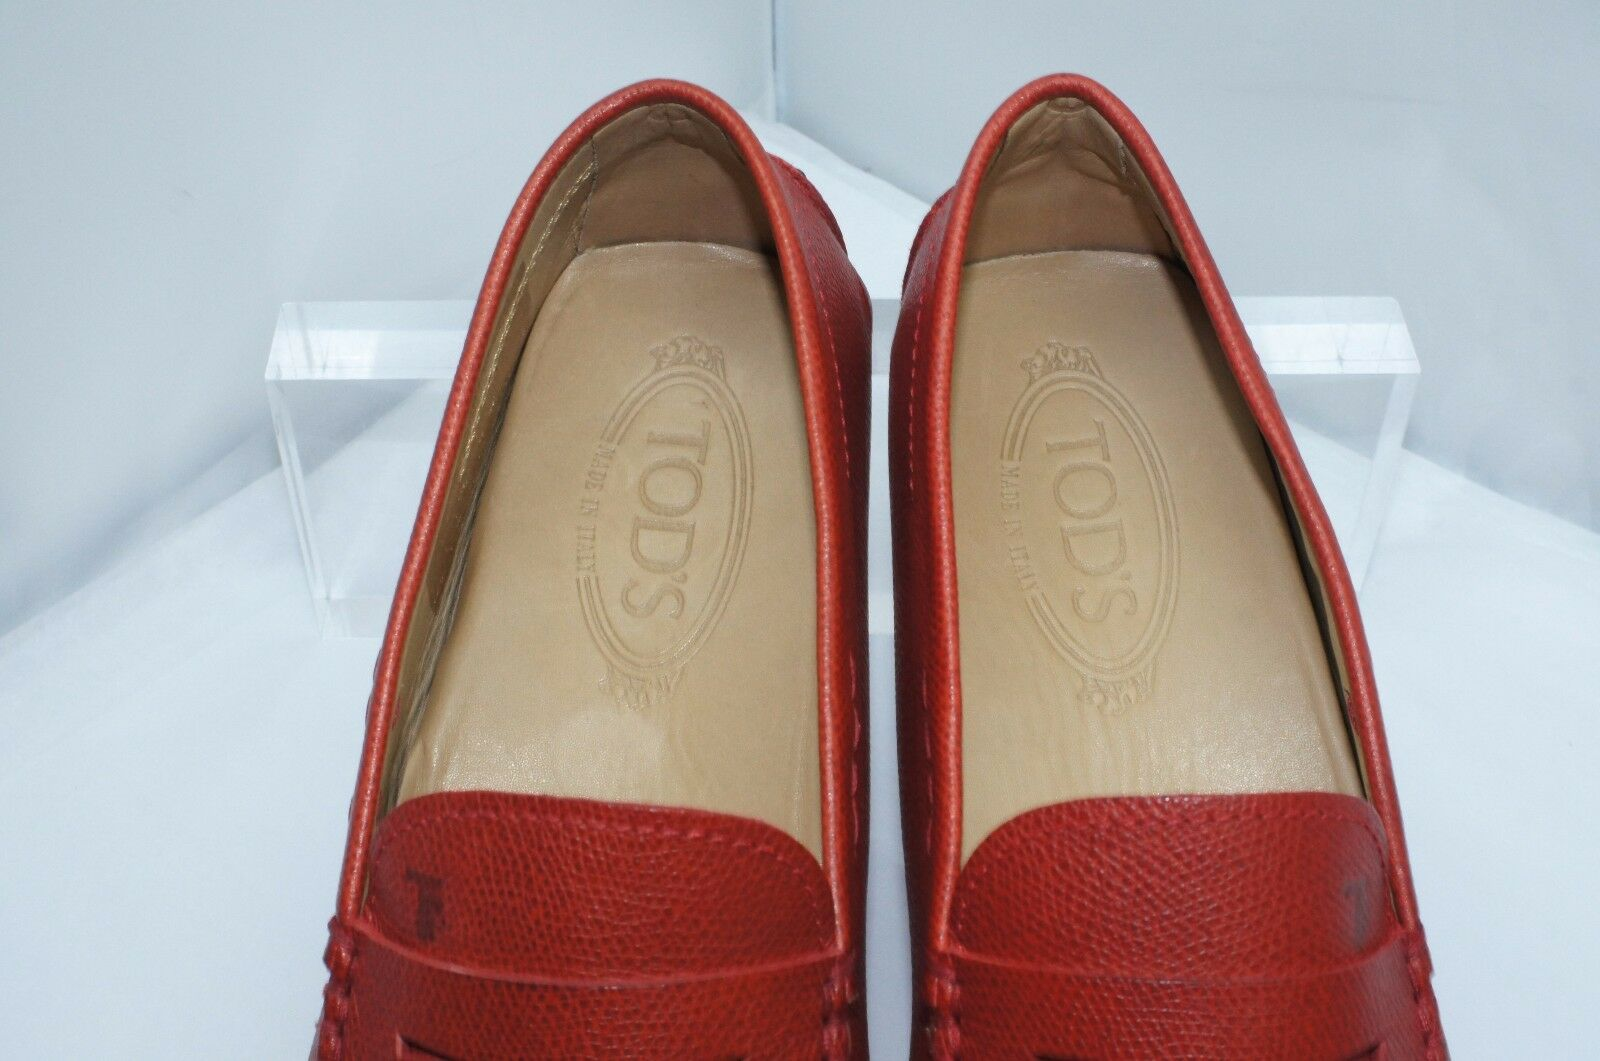 New Mocassin Tod's Uomo Red Shoes Loafers Drivers Size 8 Mocassin New Gommini Pelle 42979d